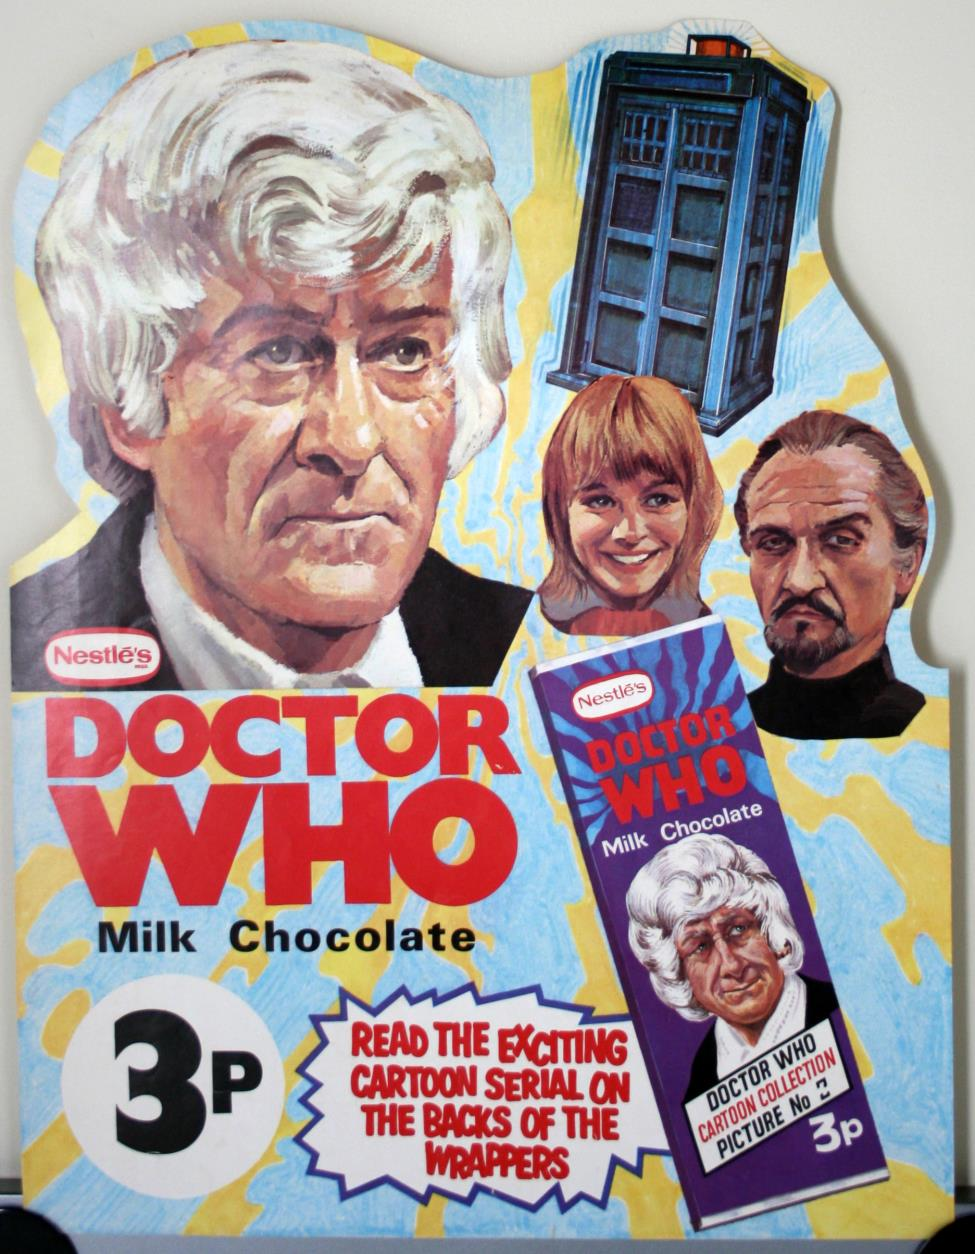 Nestle Doctor Who Milk Chocolate promotion, shop poster